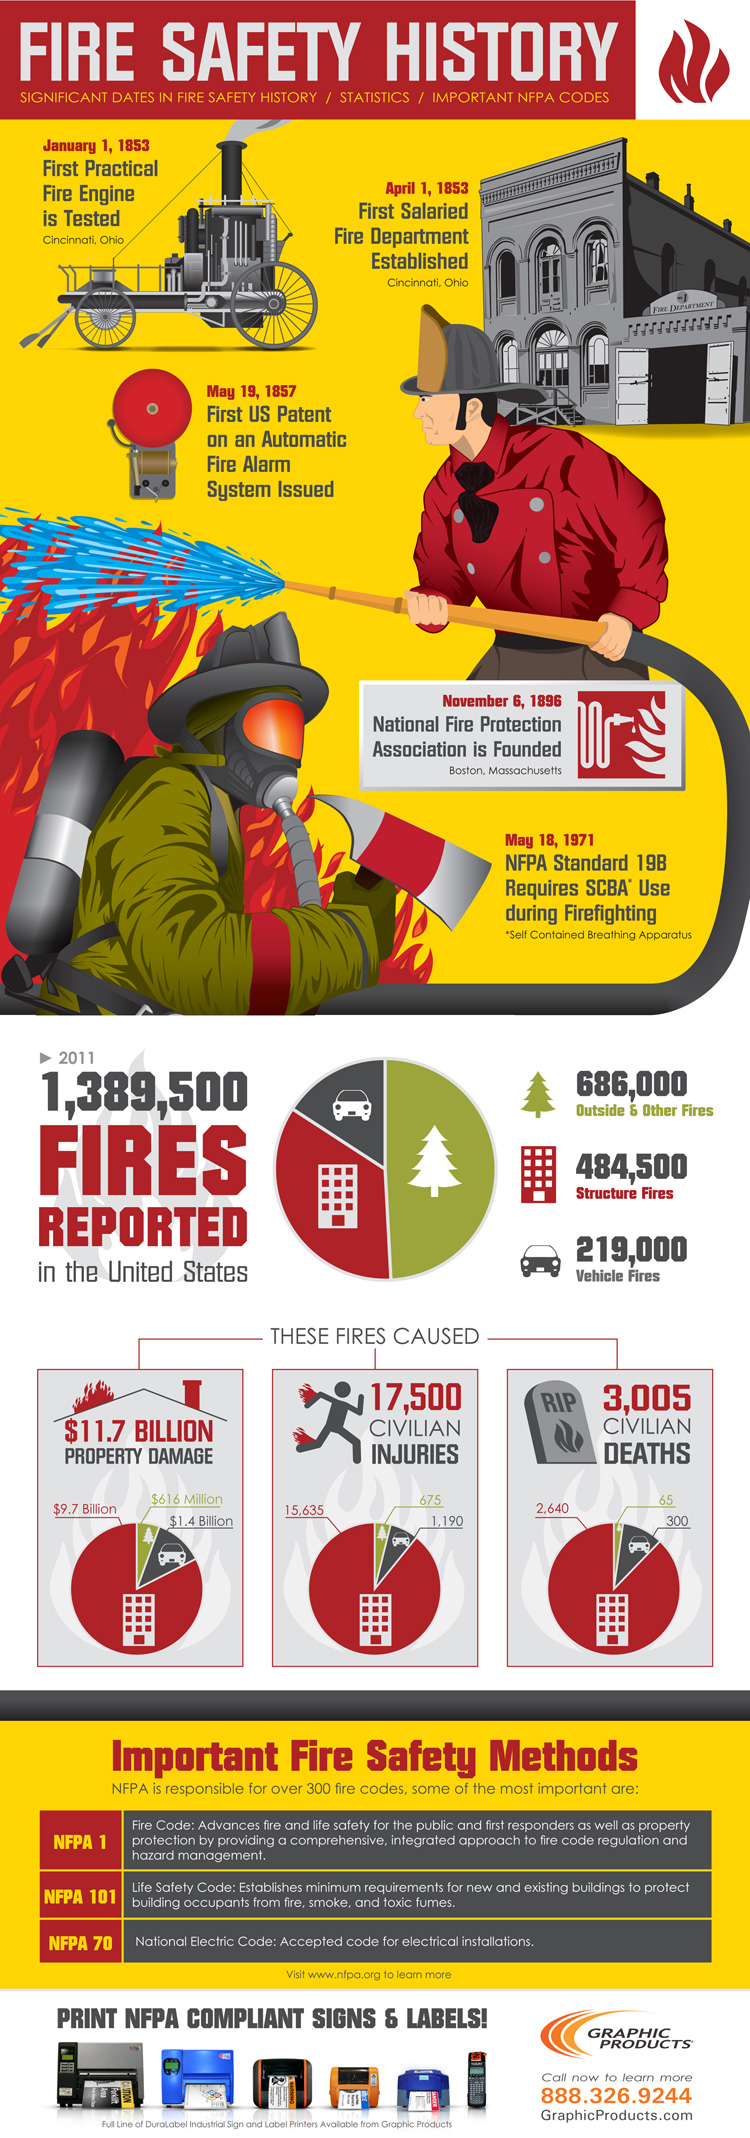 Fire Safety Facts and Trends